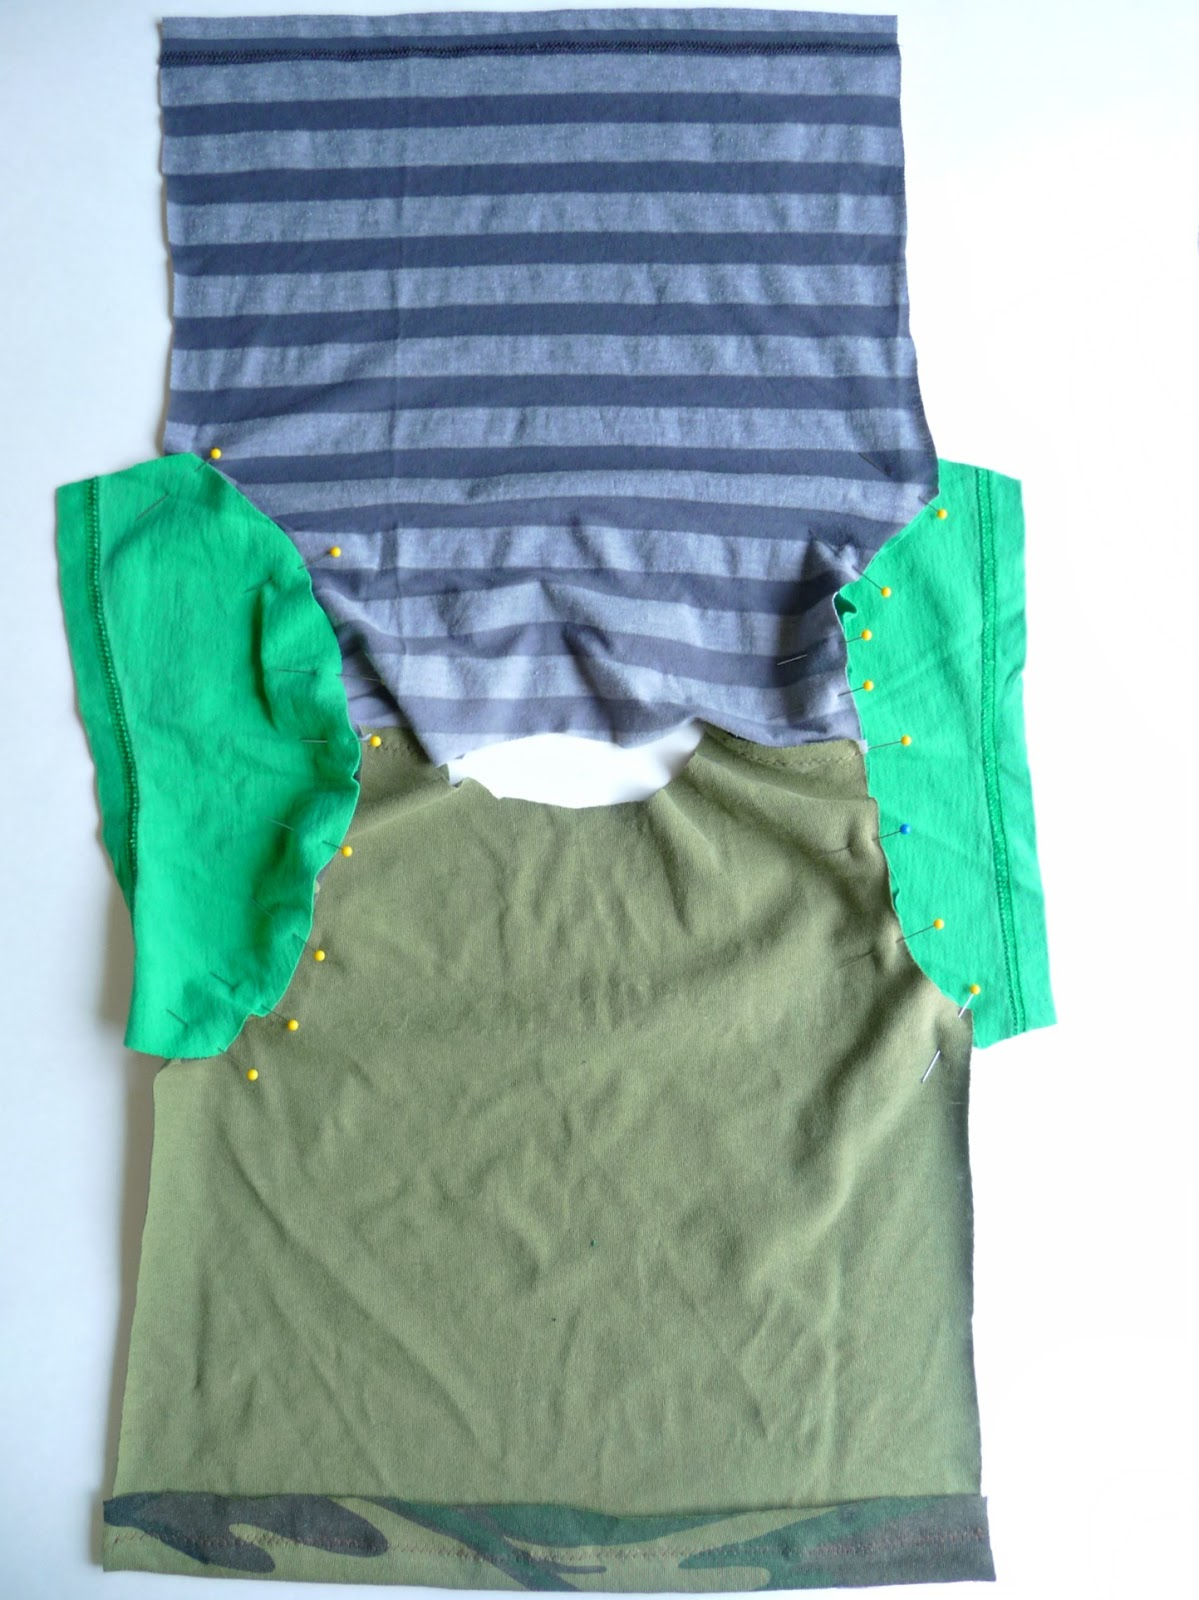 T-shirt pattern making and sewing tutorial refashion